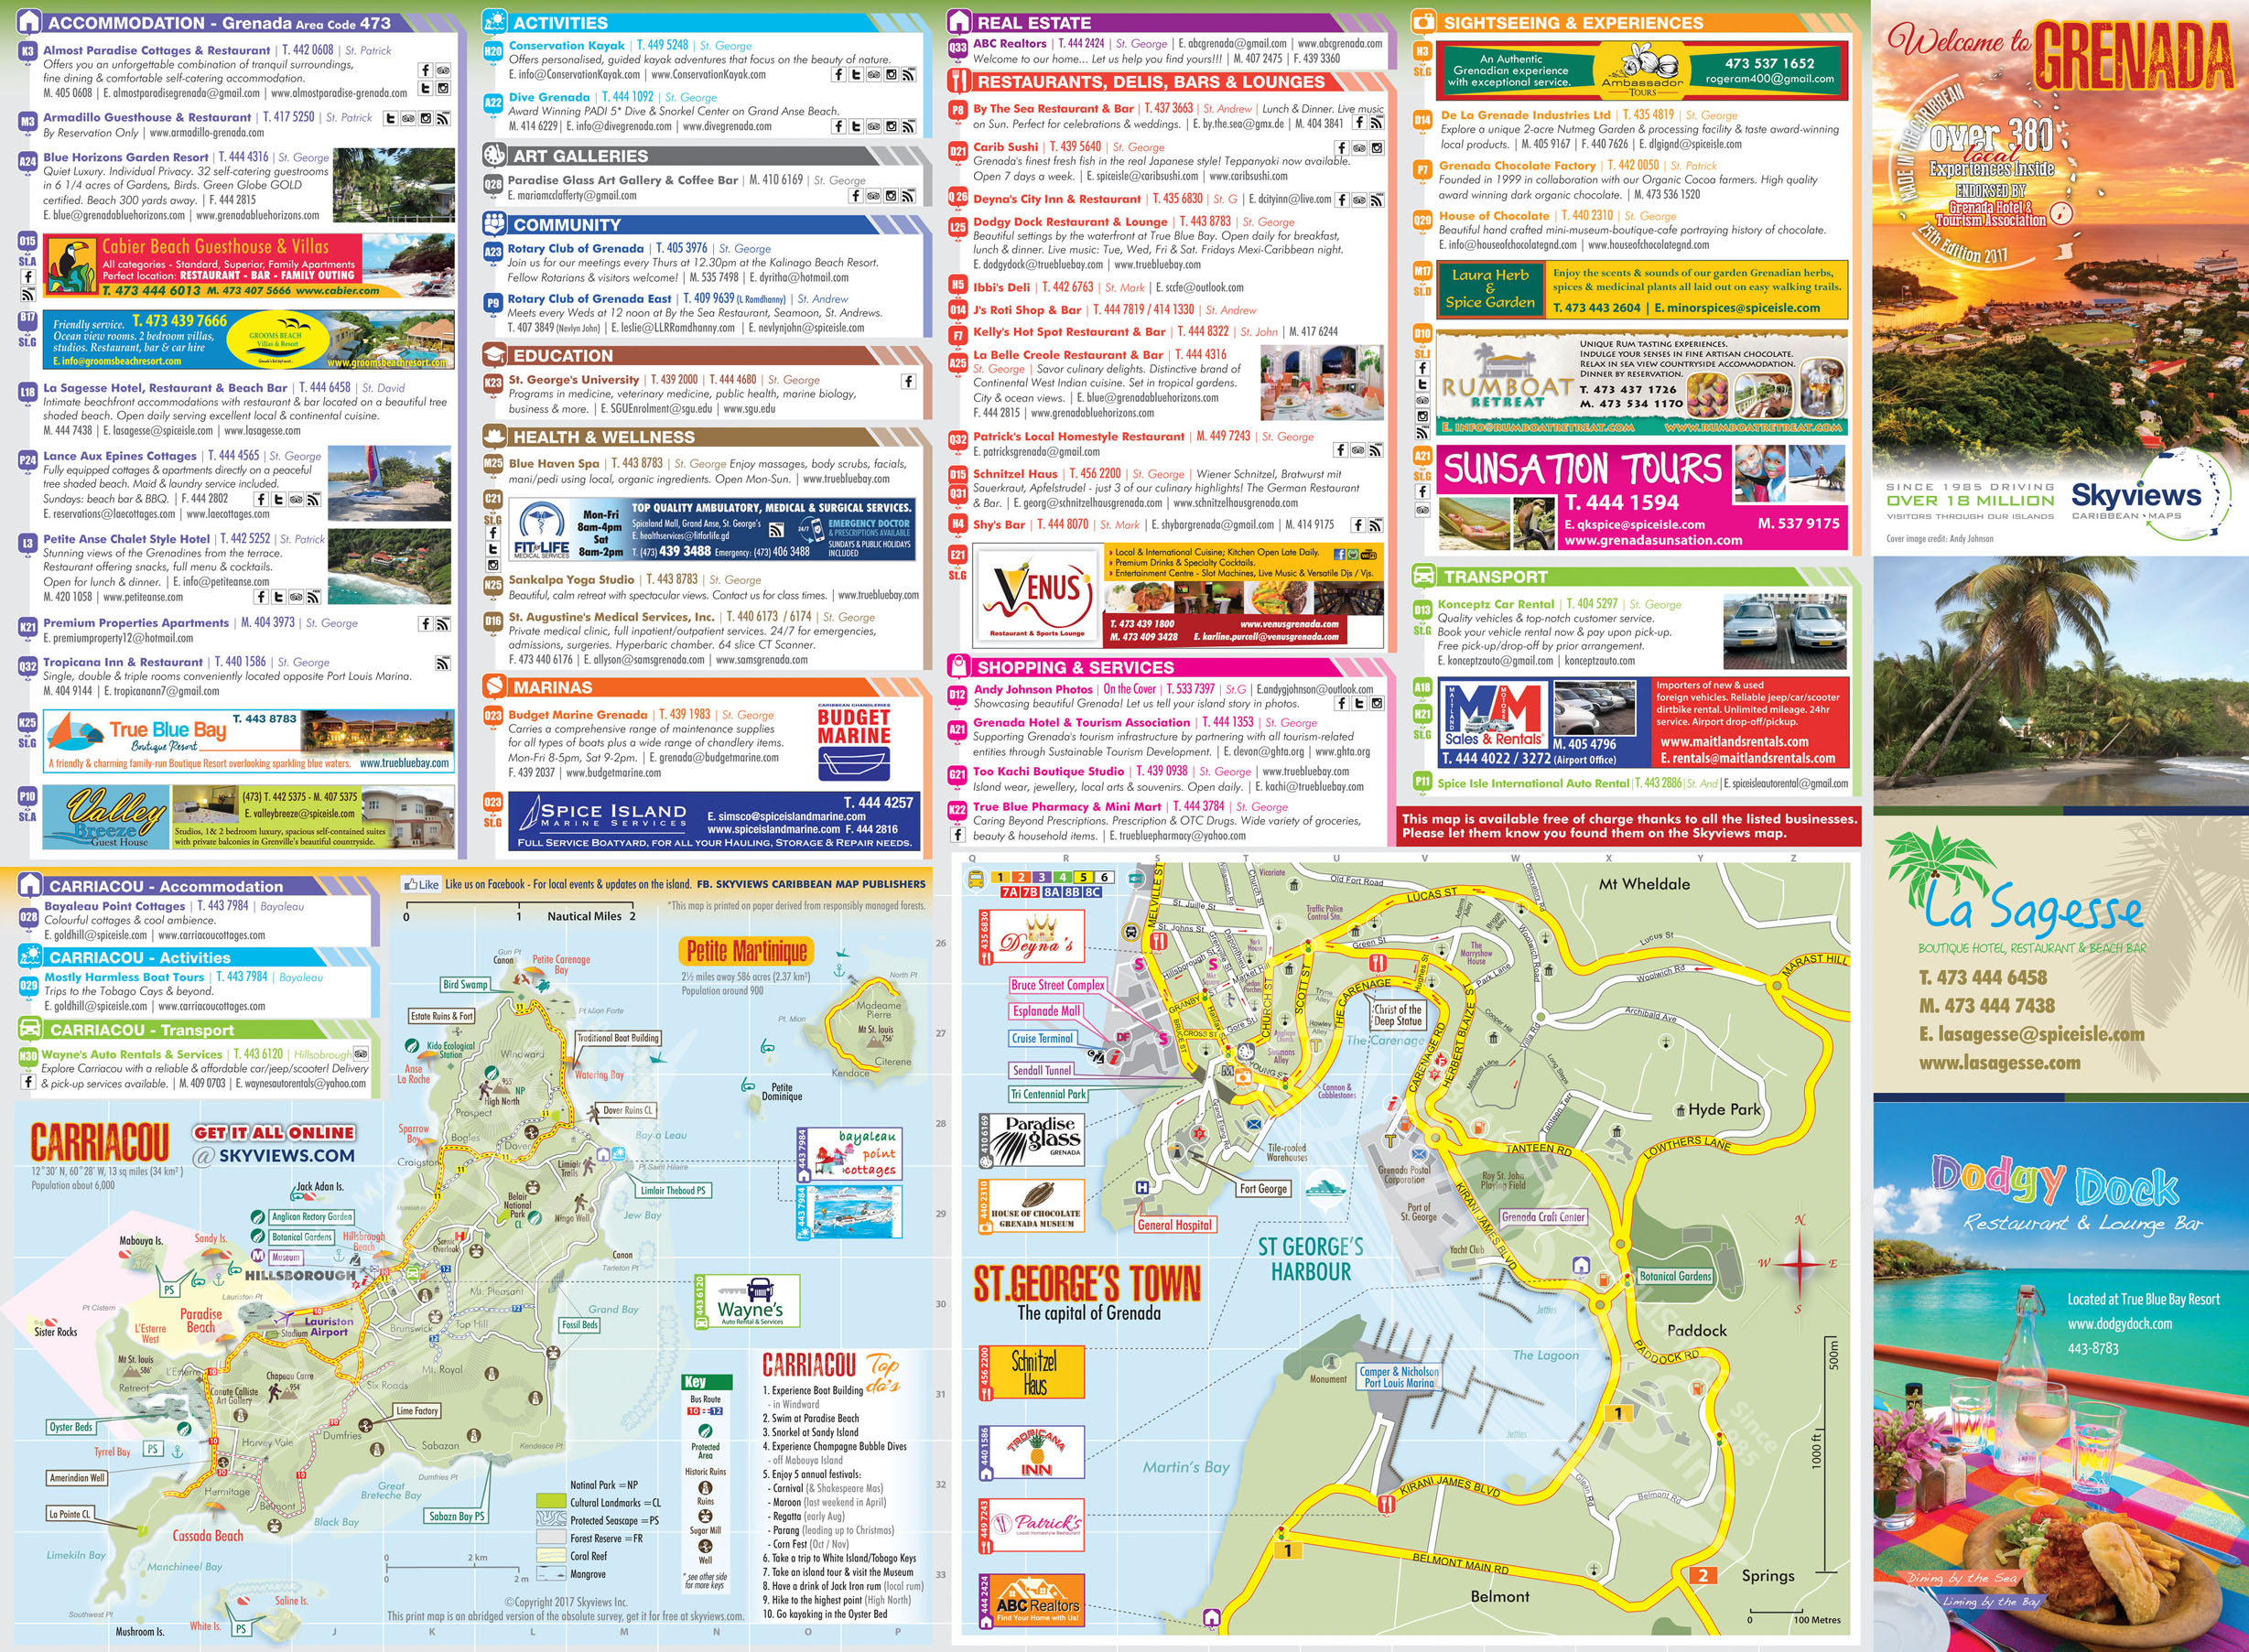 Map of Grenada Caribbean Islands Maps and Guides